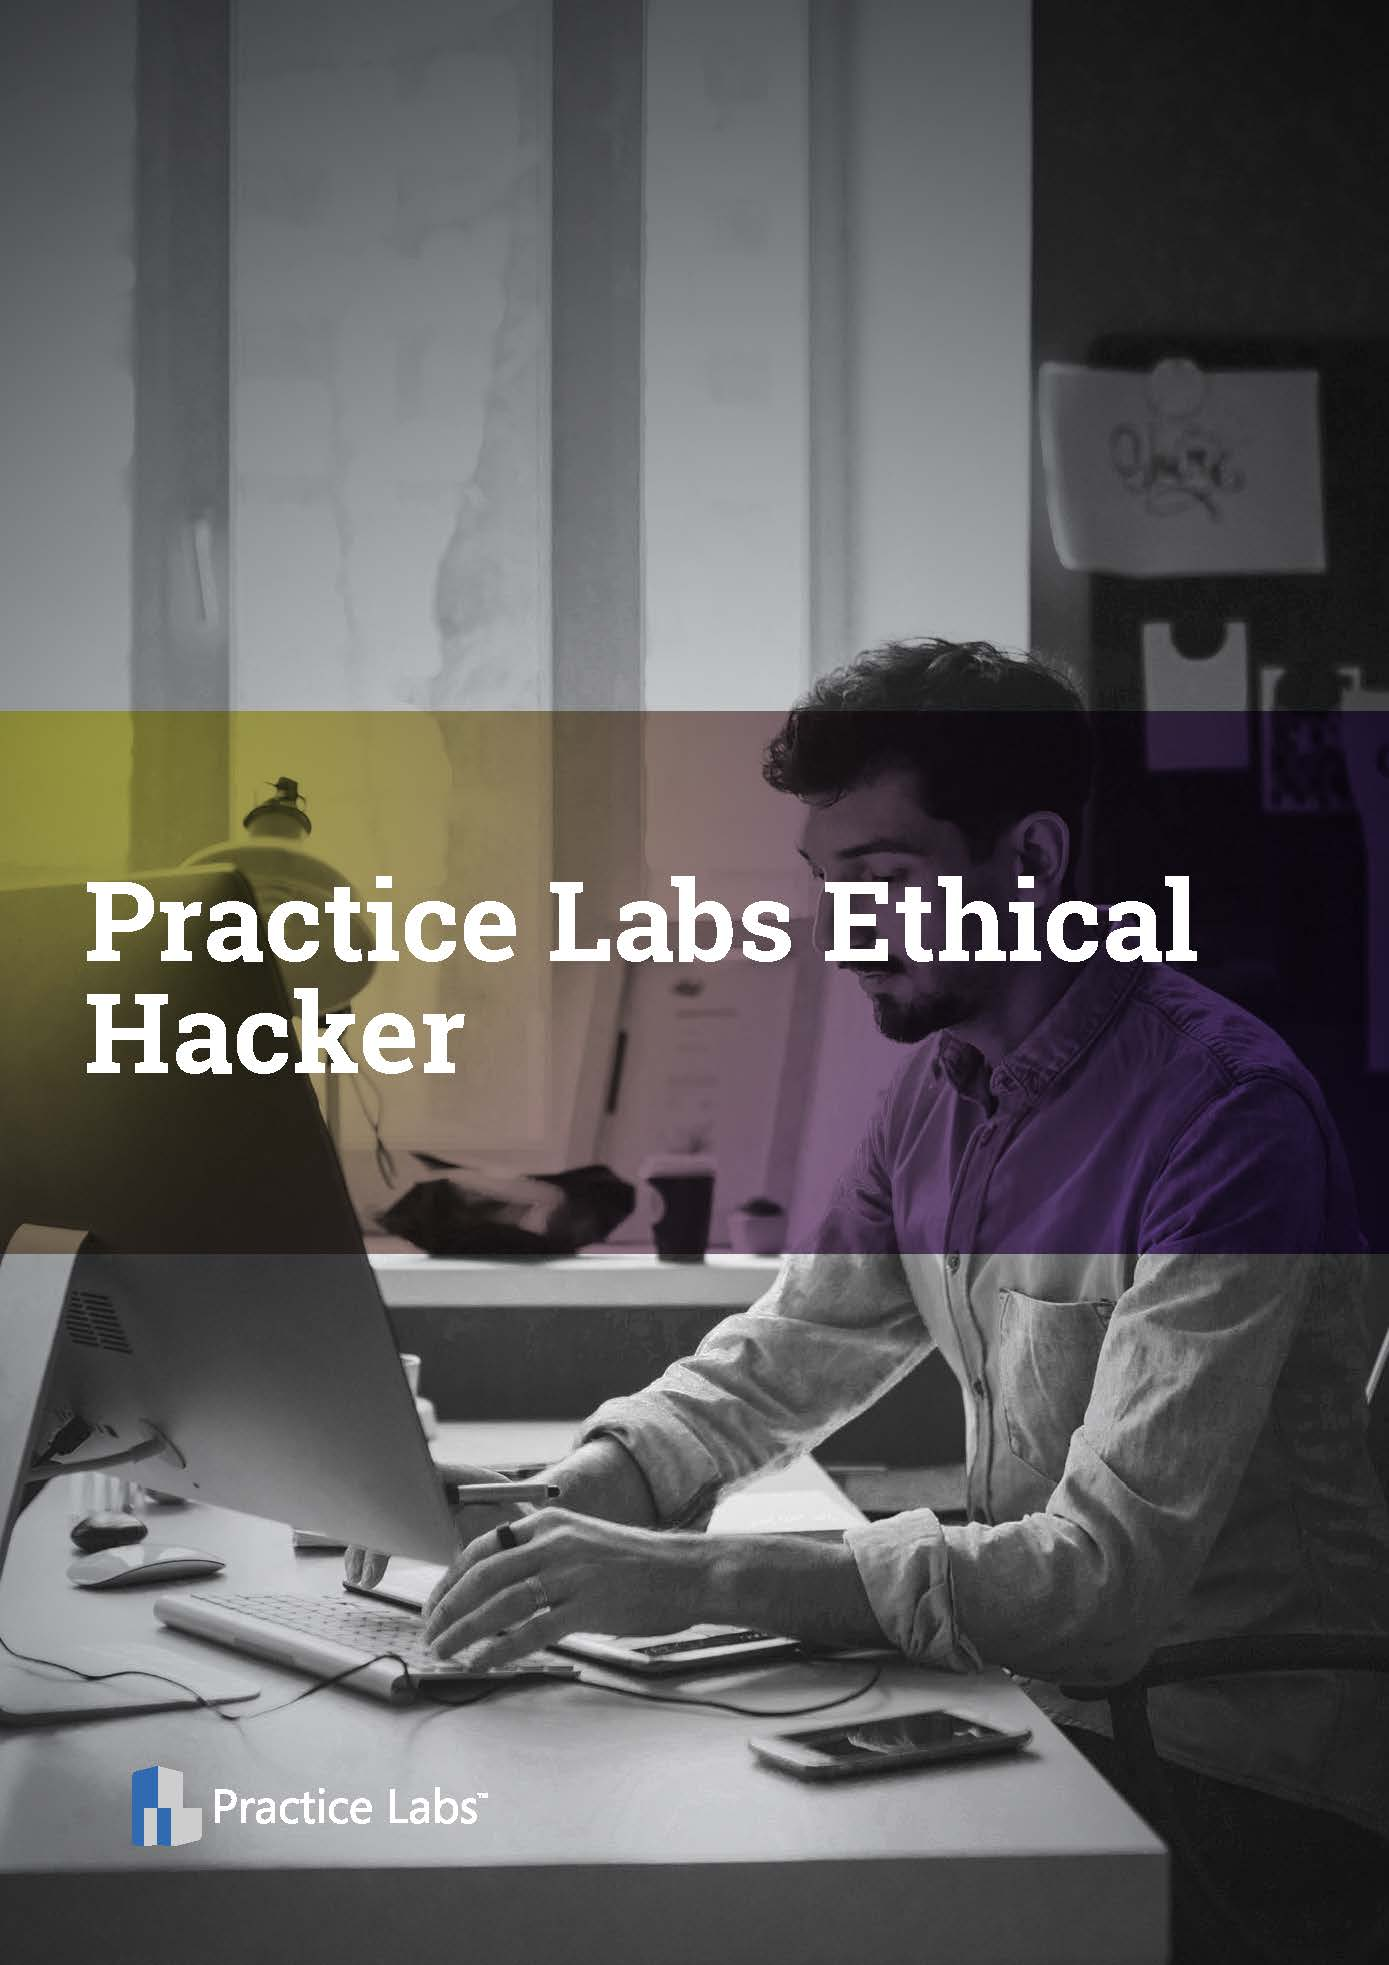 Practice Labs Ethical Hacker